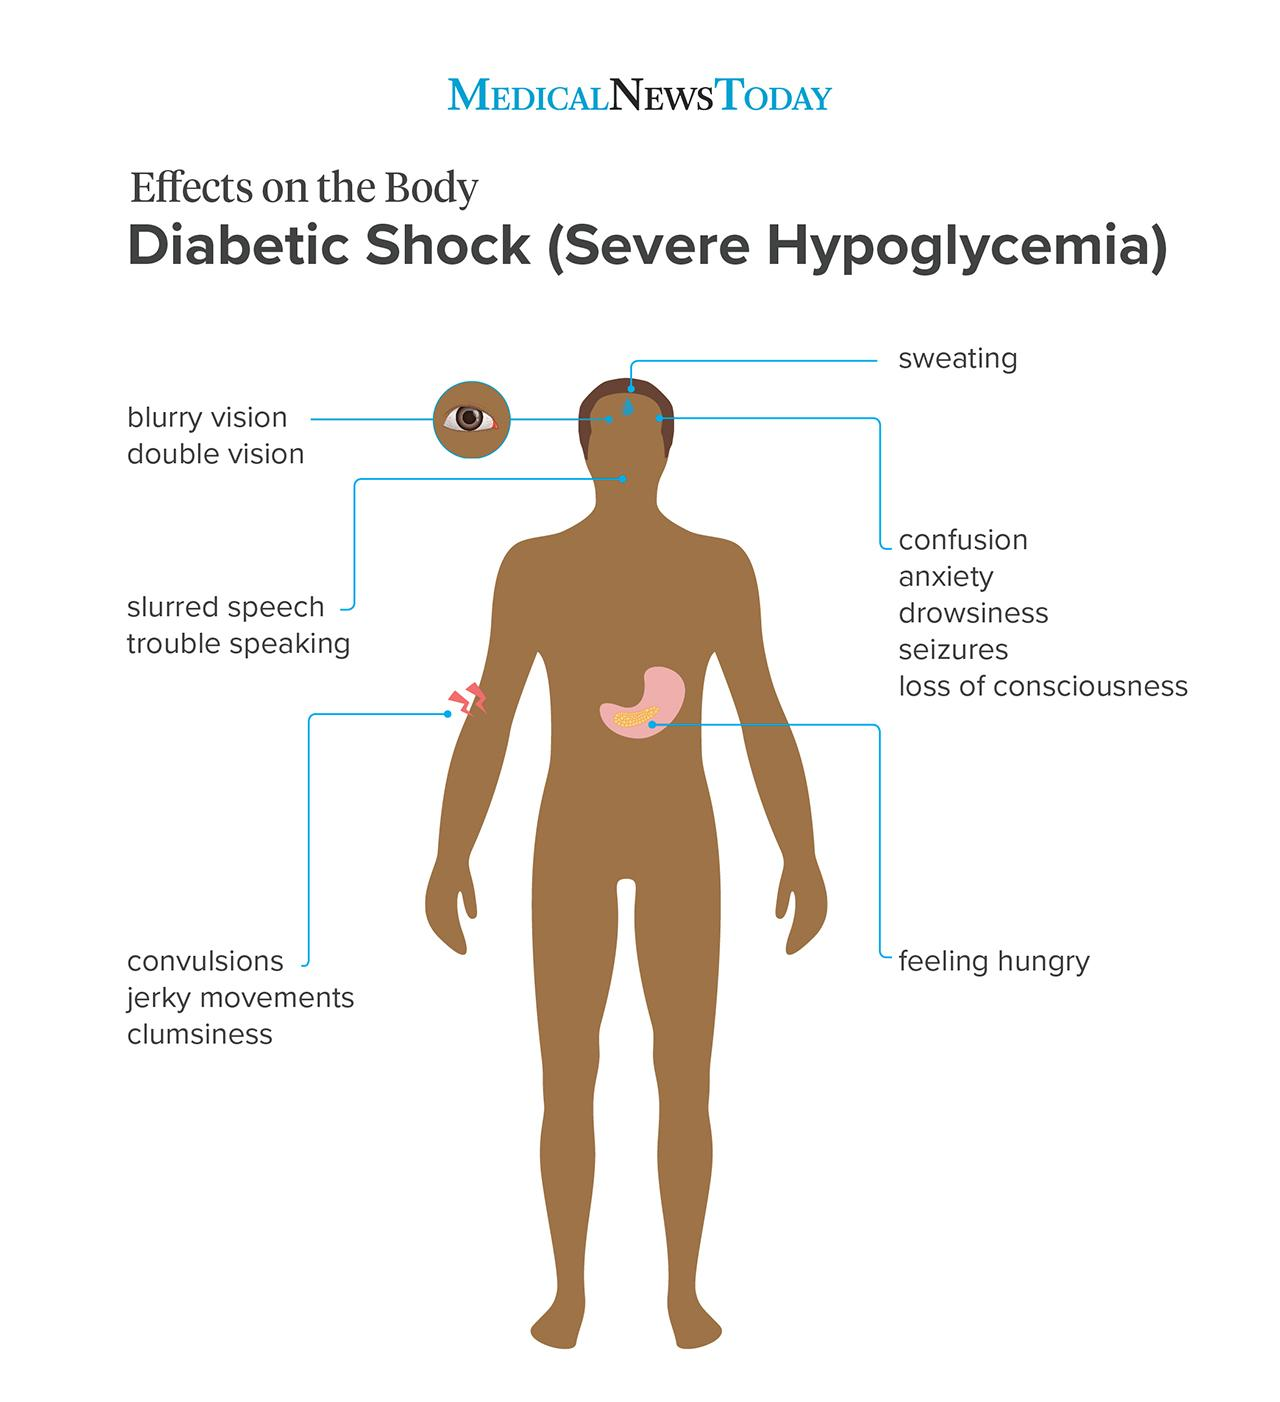 Diabetic shock (severe hypoglycemia) - effects on the body series